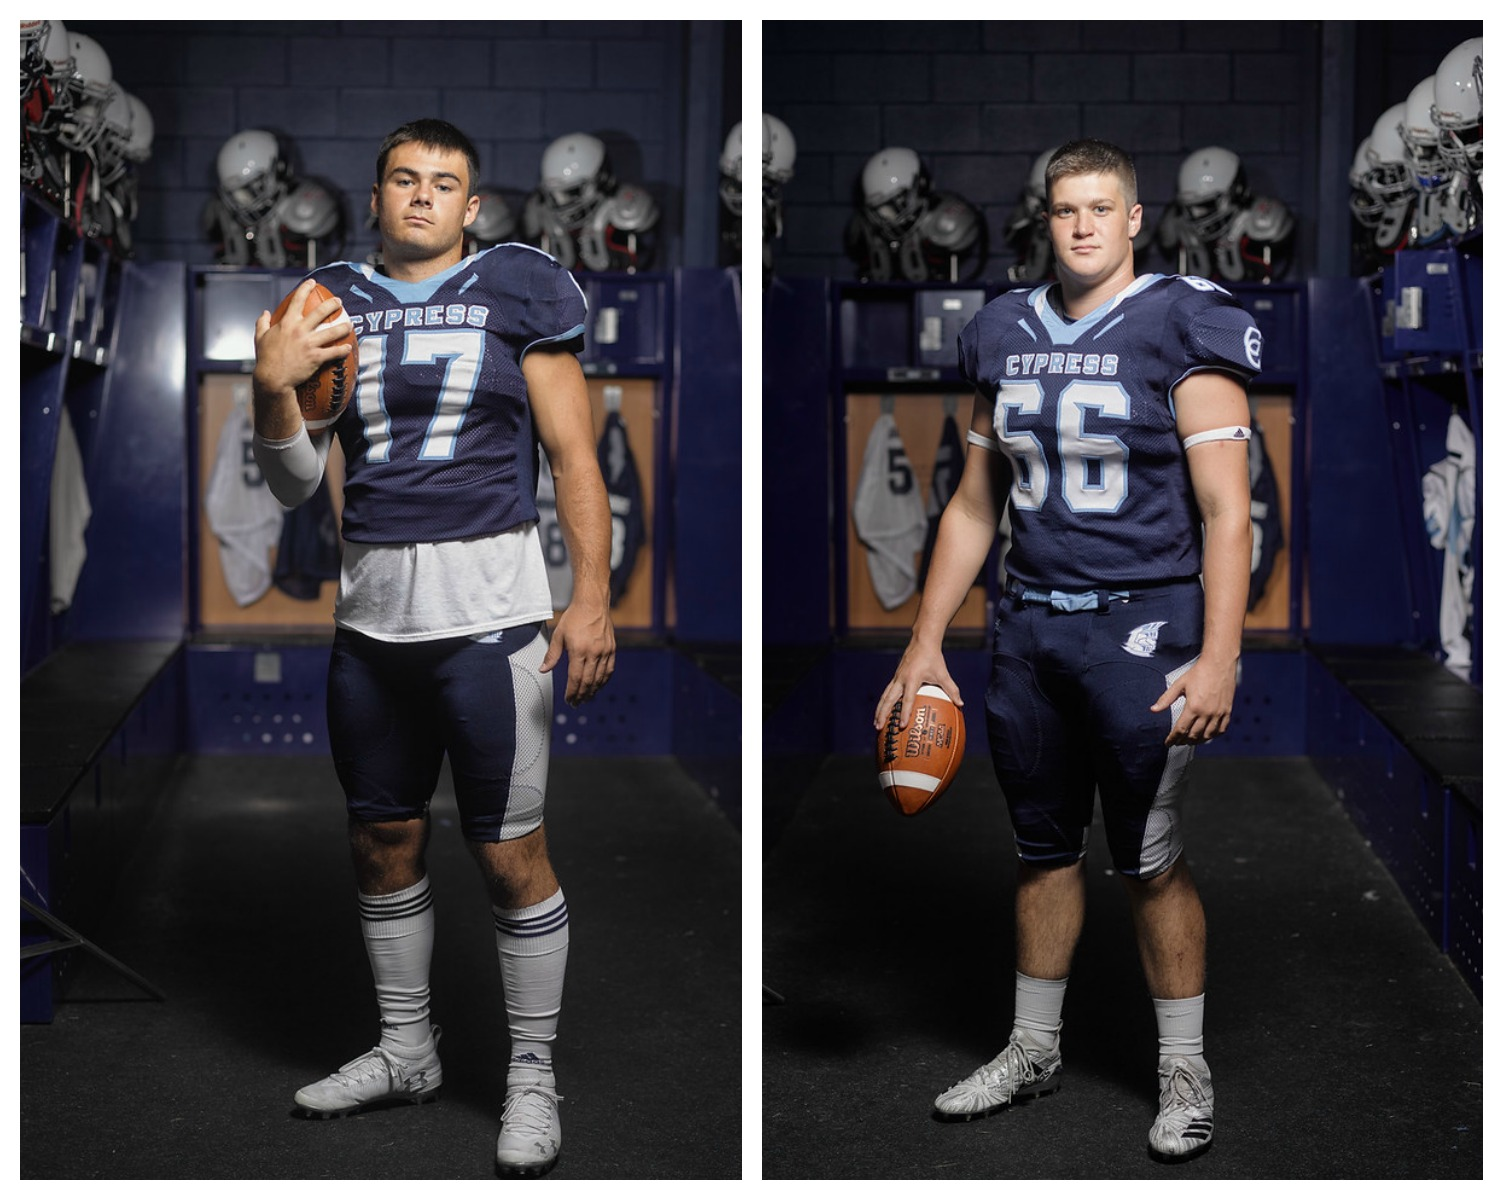 Seniors Fleischhauer & Townsend to Play College Football